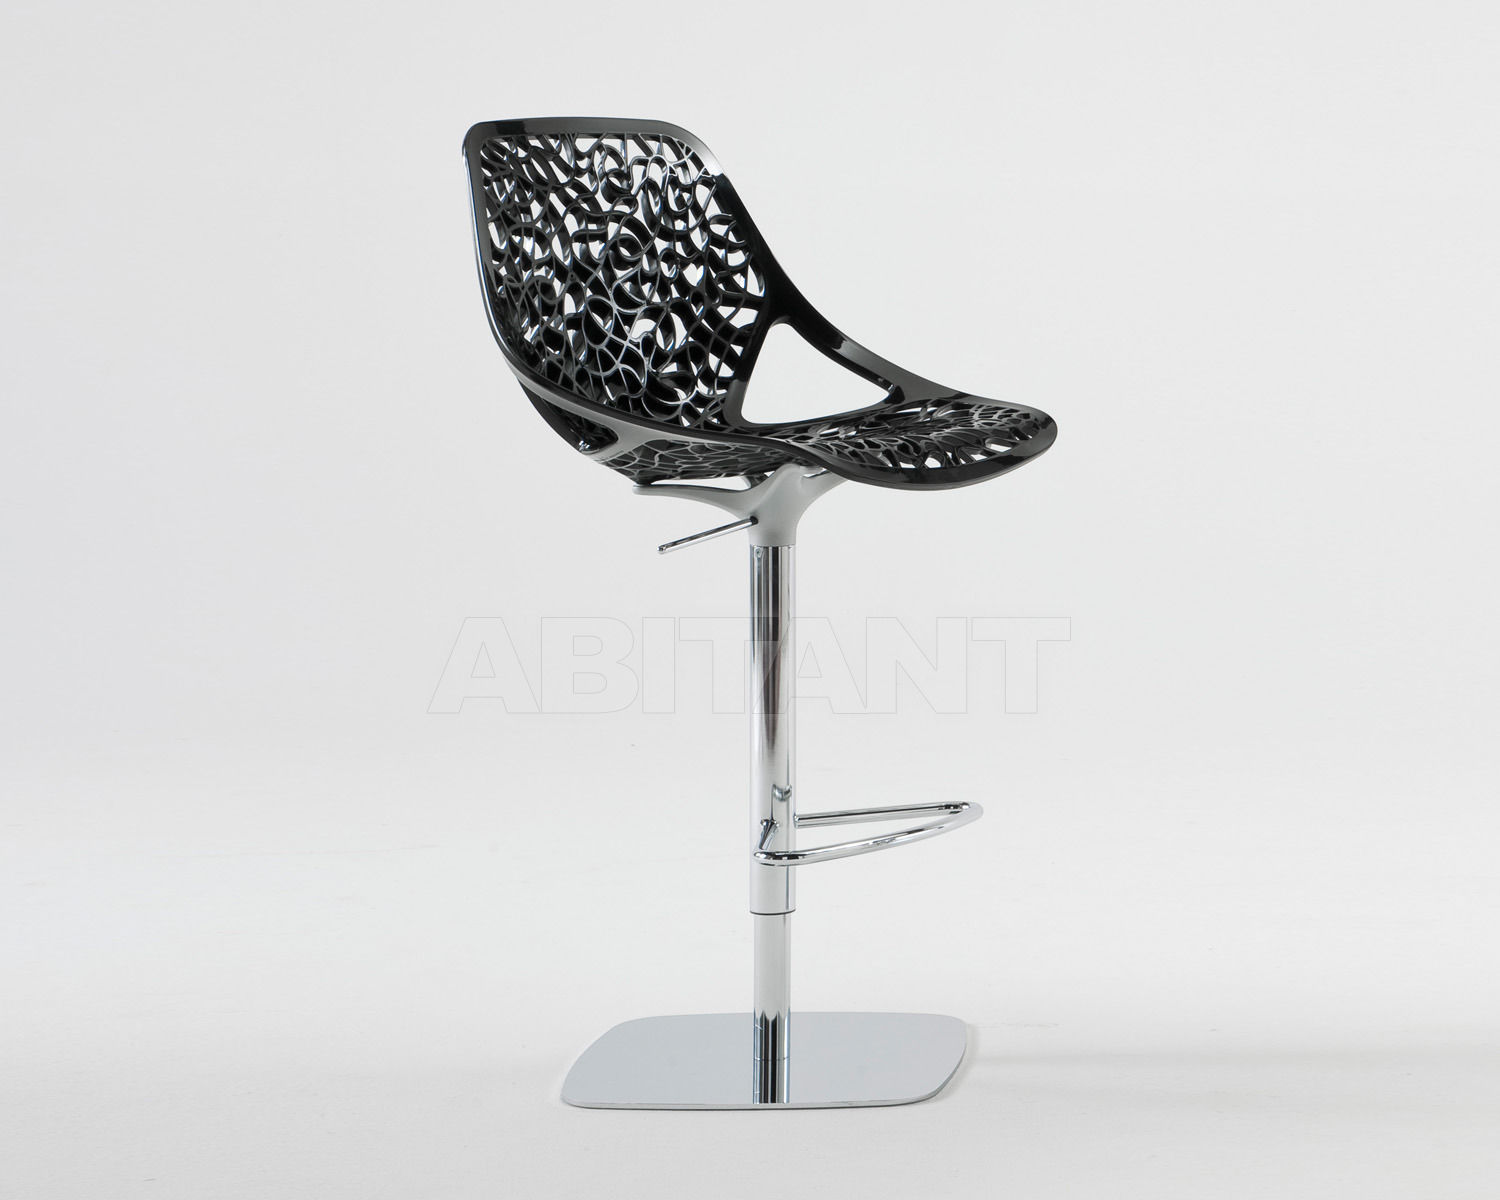 Купить Барный стул Casprini 2011 - Europe CAPRICE stool Black